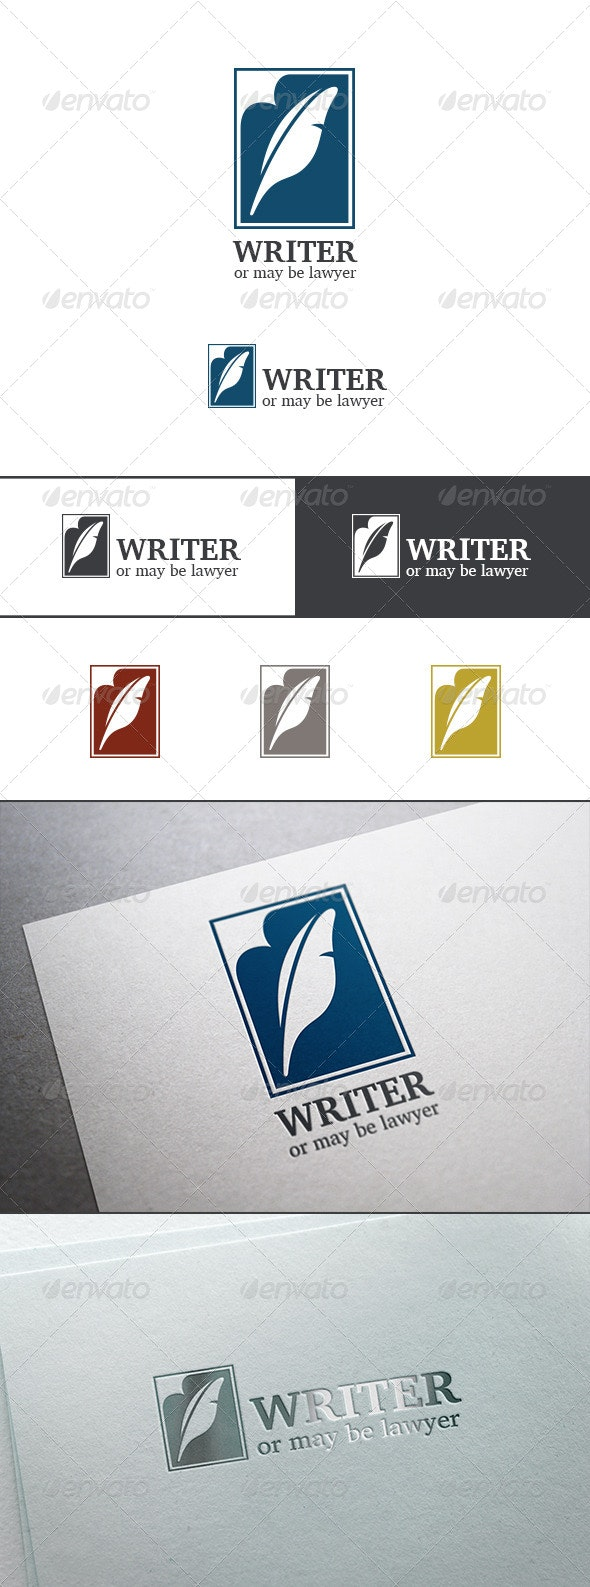 Lawyer Writer Feather Silhouette Logo Abstract - Objects Logo Templates